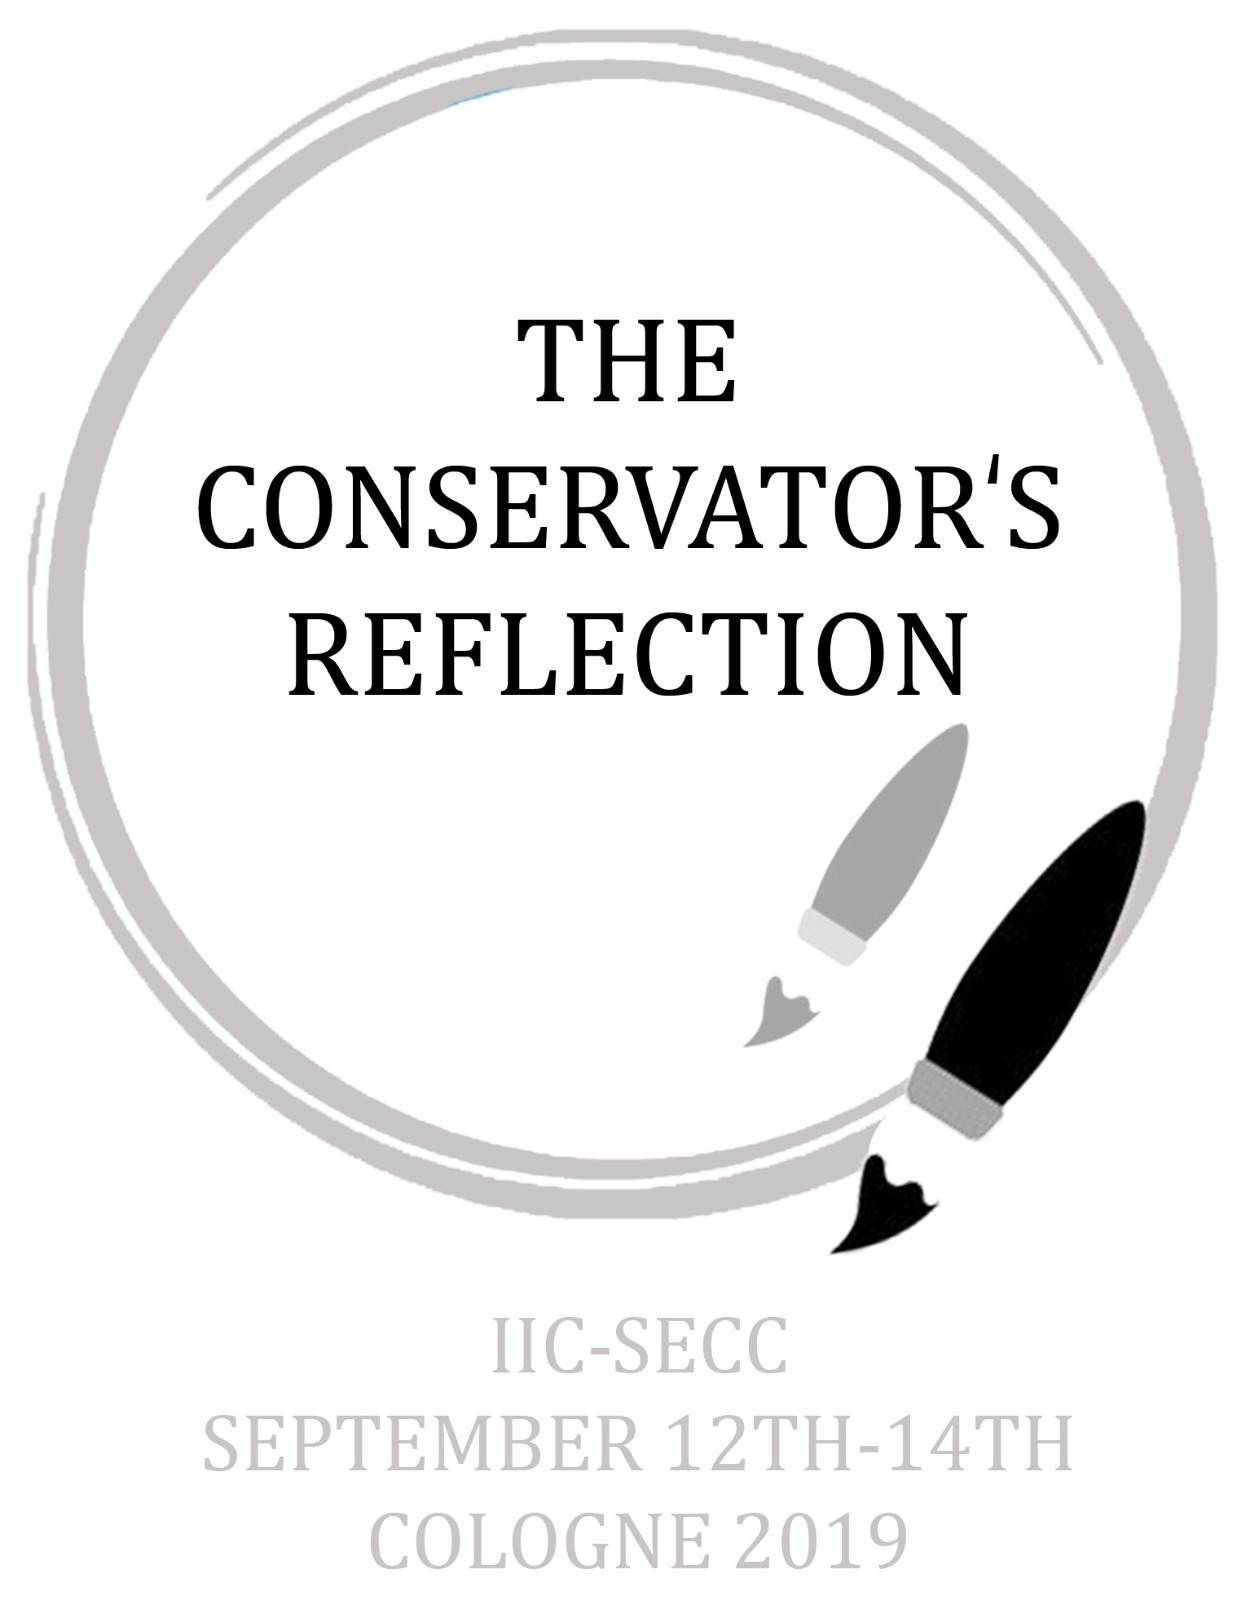 The Conservator's Reflection - Cologne 2019